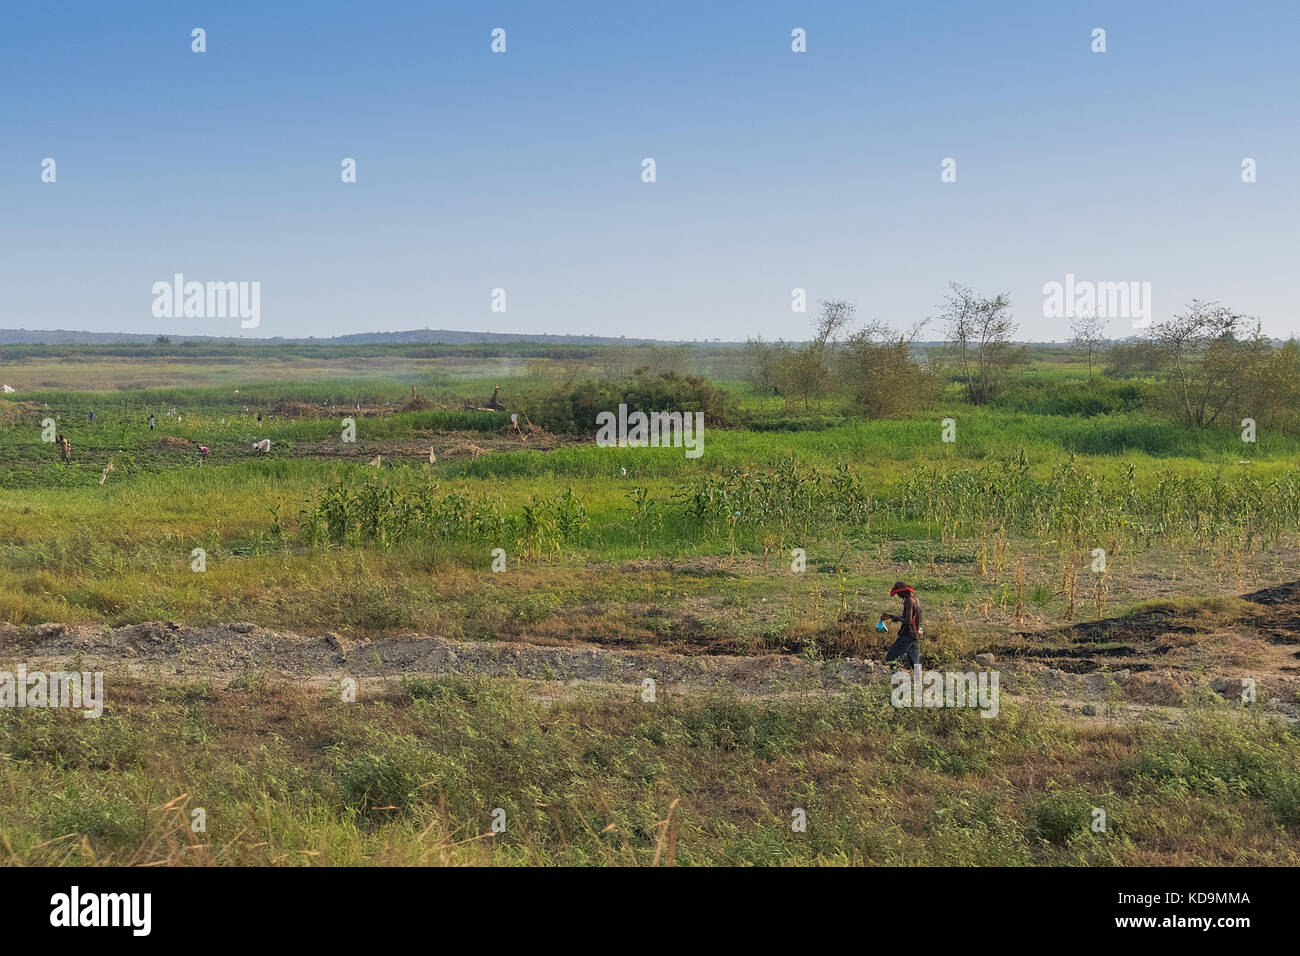 Field of African agriculture. With farmers. Angola. - Stock Image